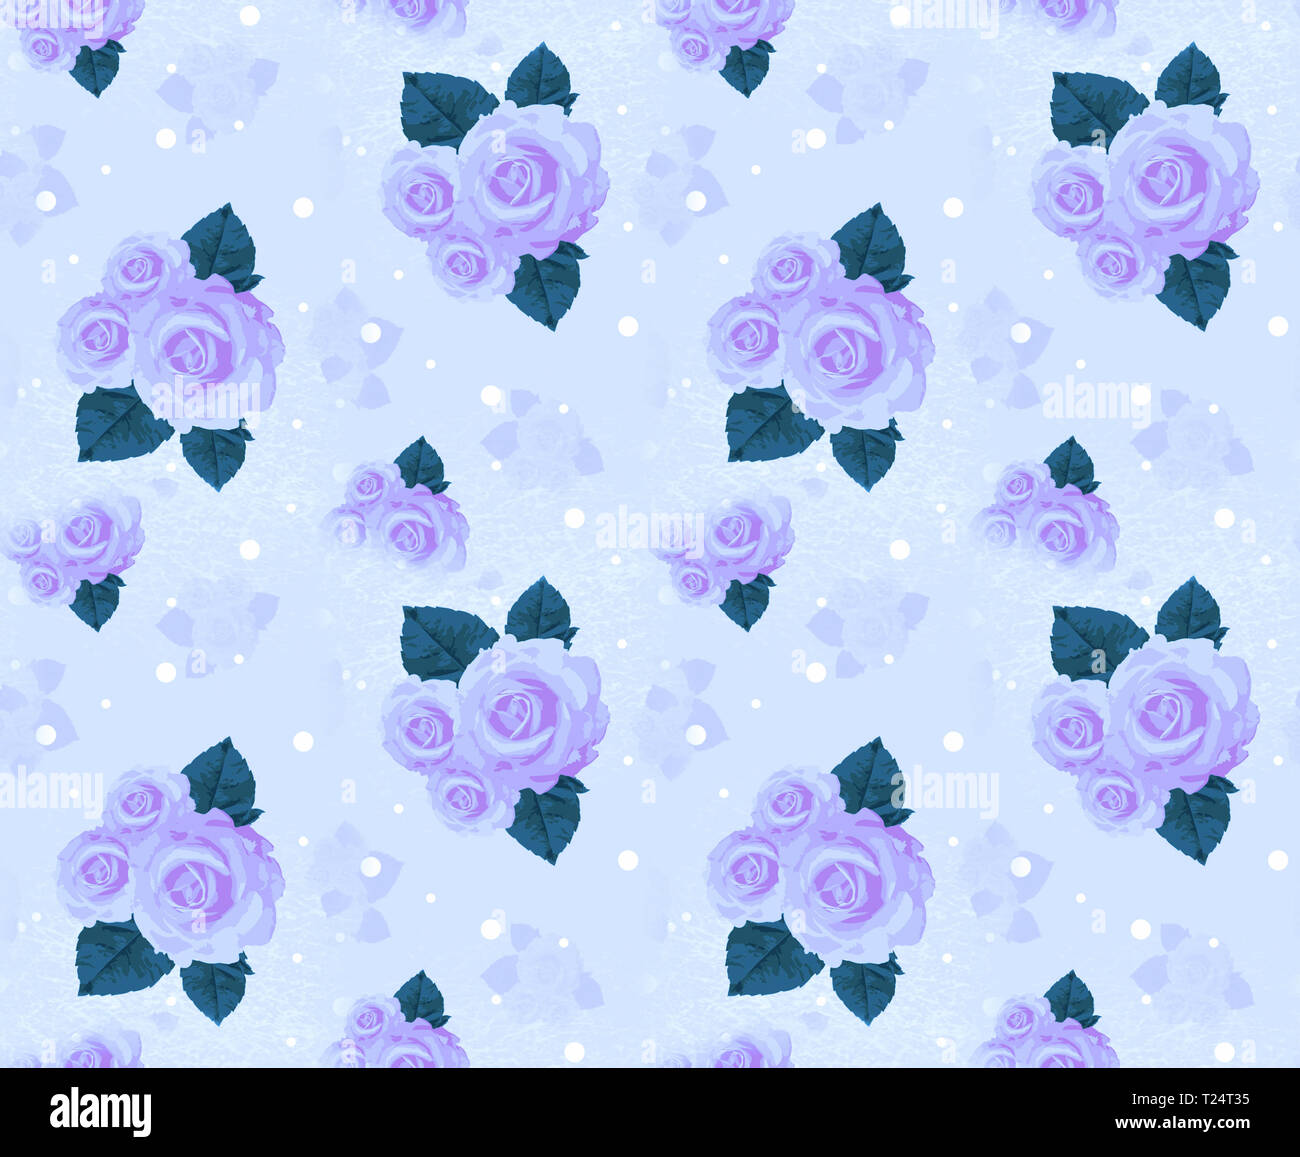 Seamless Wall Paper With Roses Lilac A Vintage Decorative